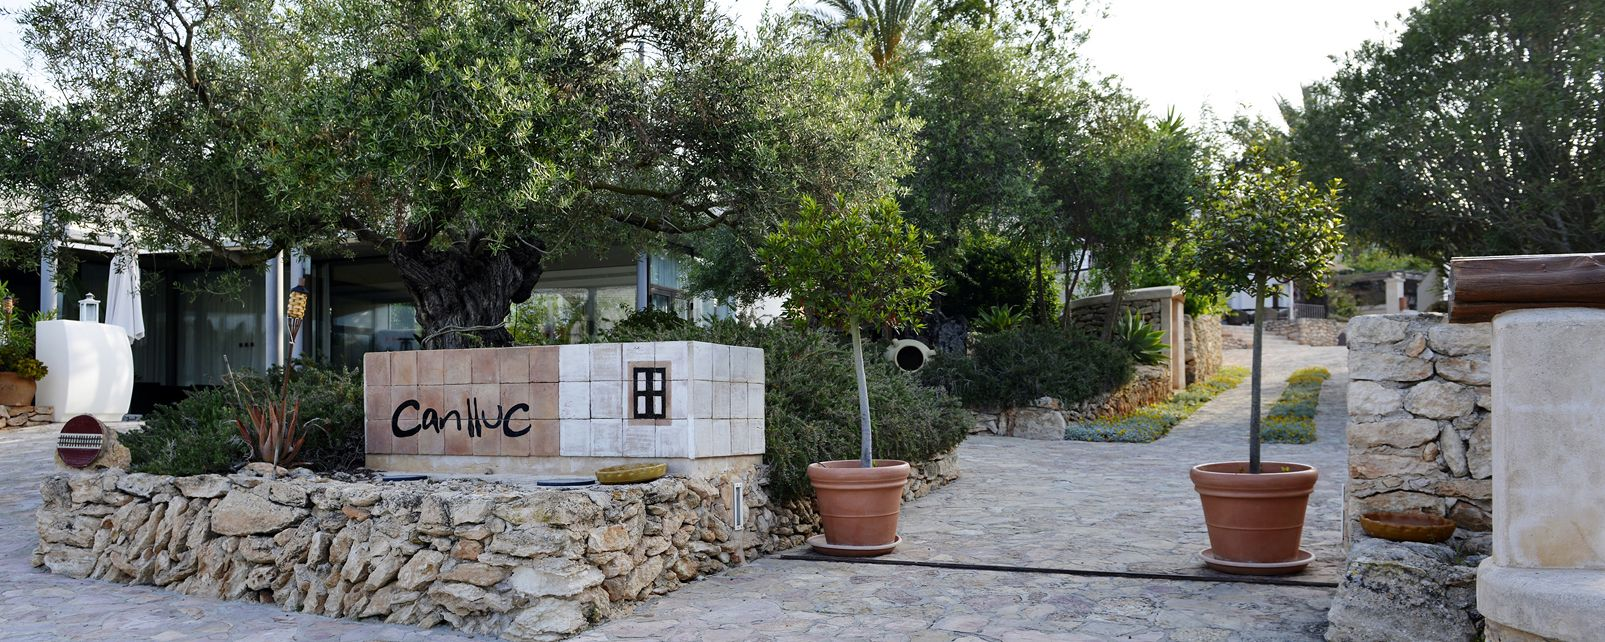 Hôtel Can Lluc Boutique Country and Villas